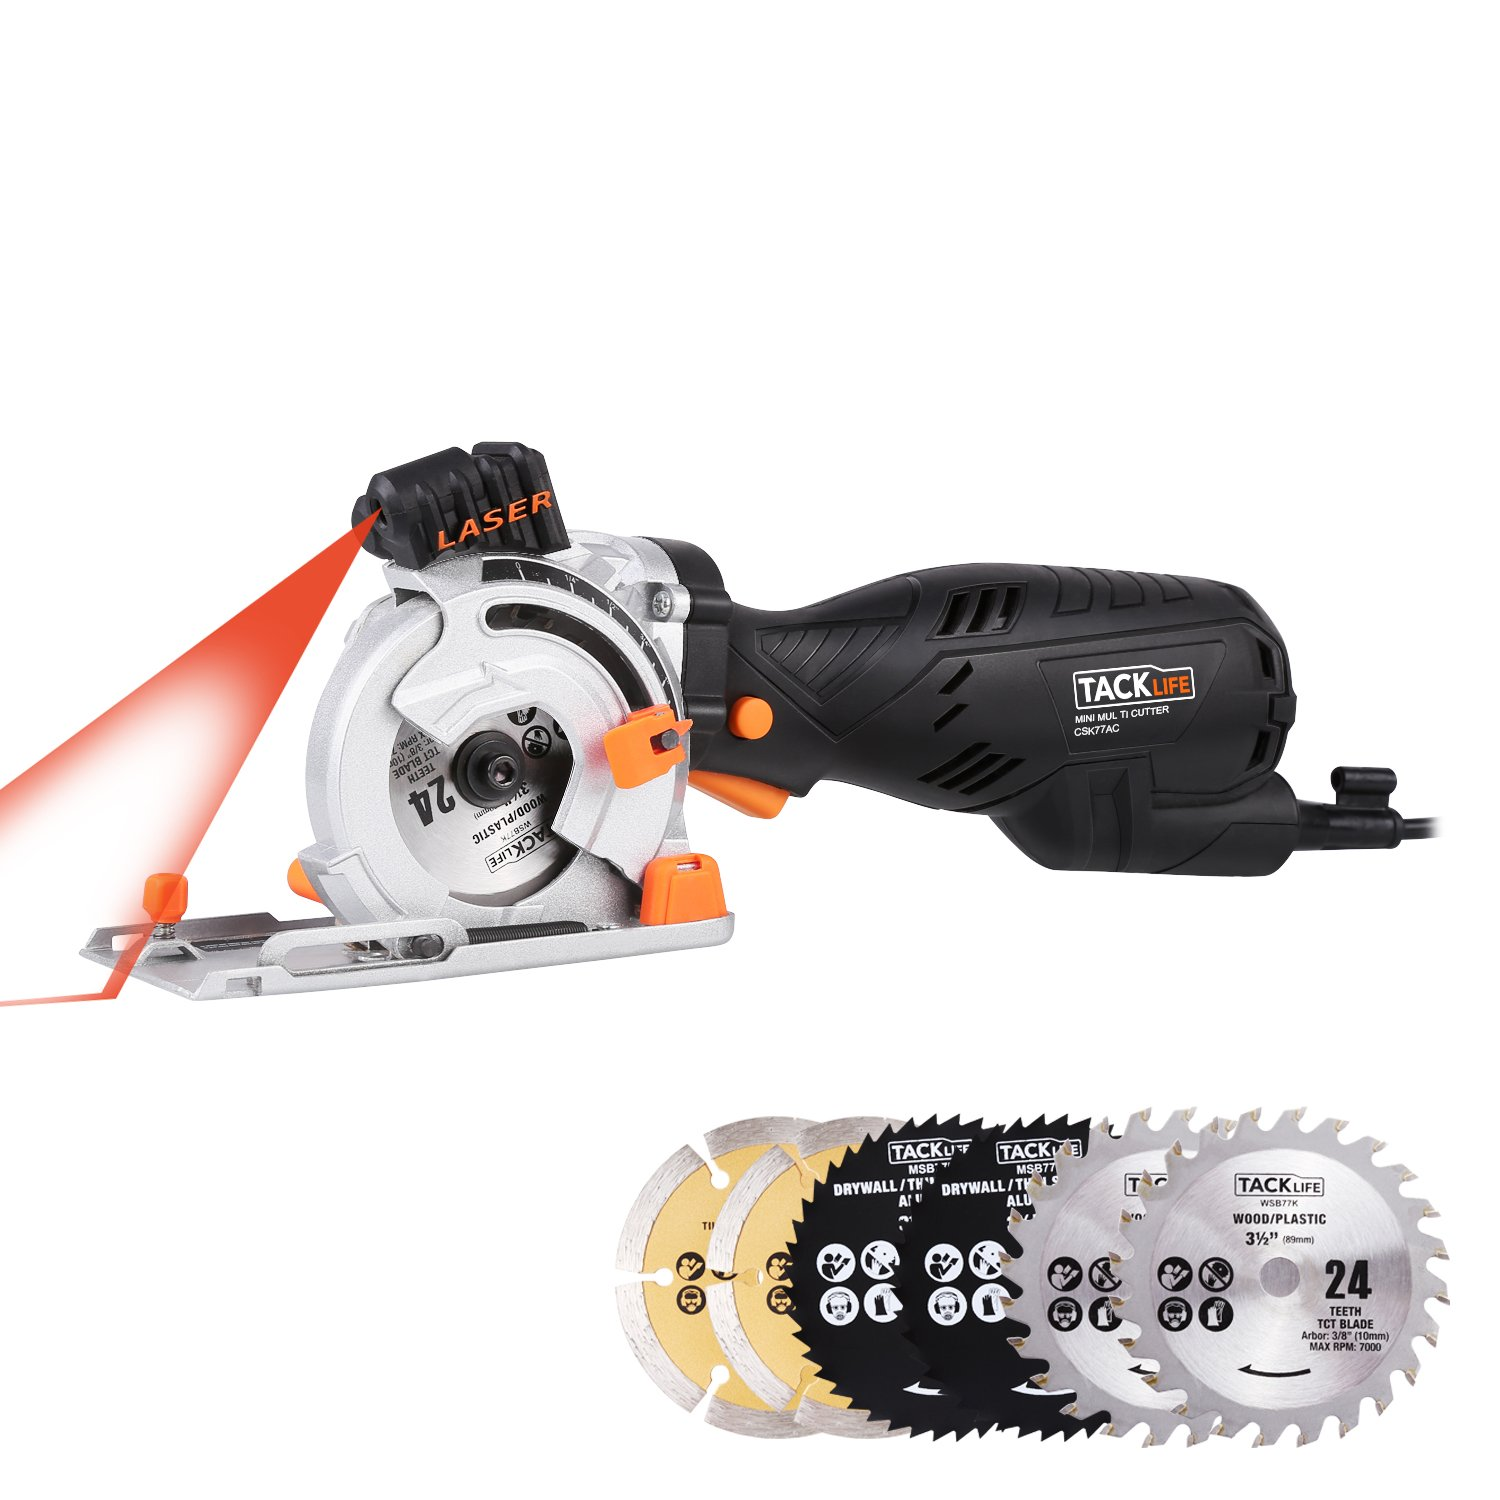 Tacklife Mini Circular Saw review